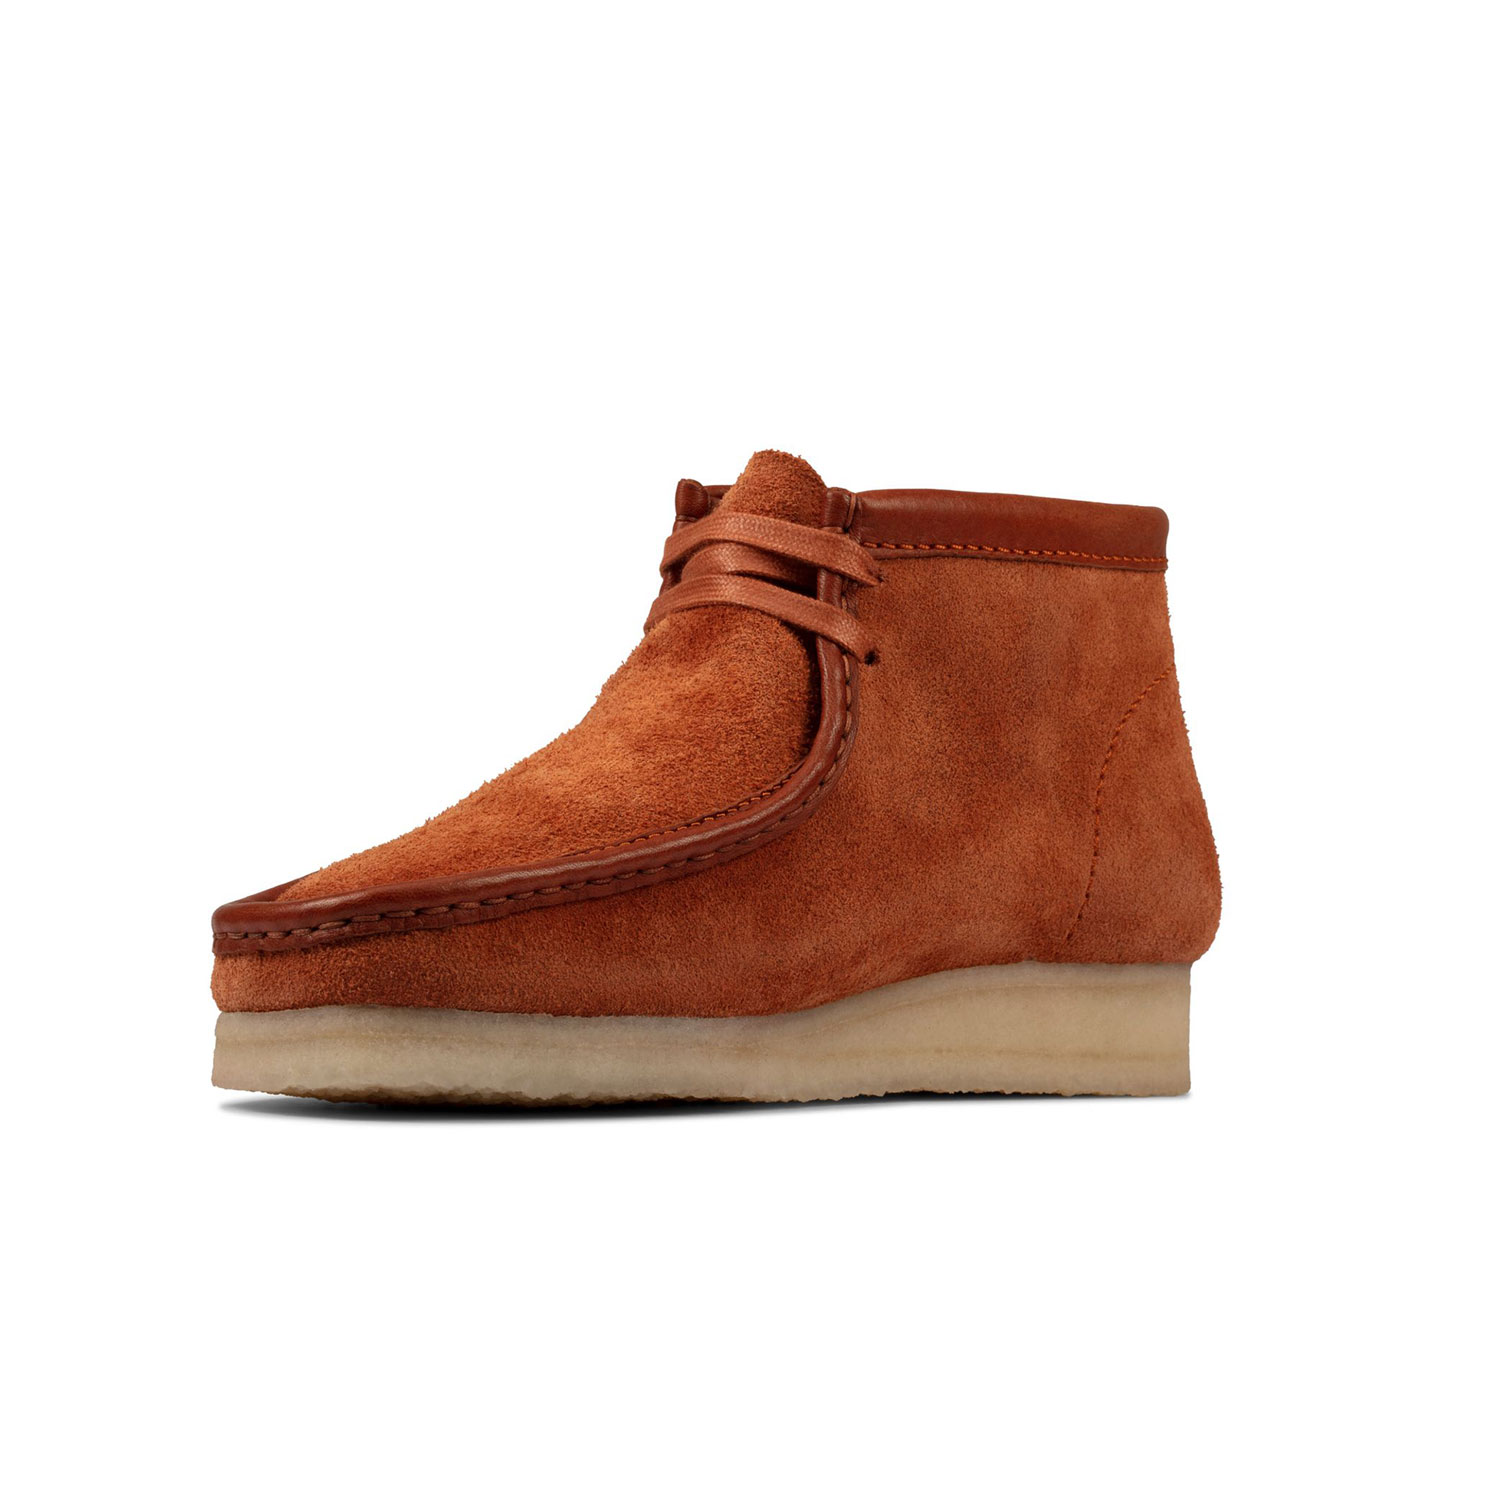 Clarks Wallabee Boot - Tan/Hairy Suede 2